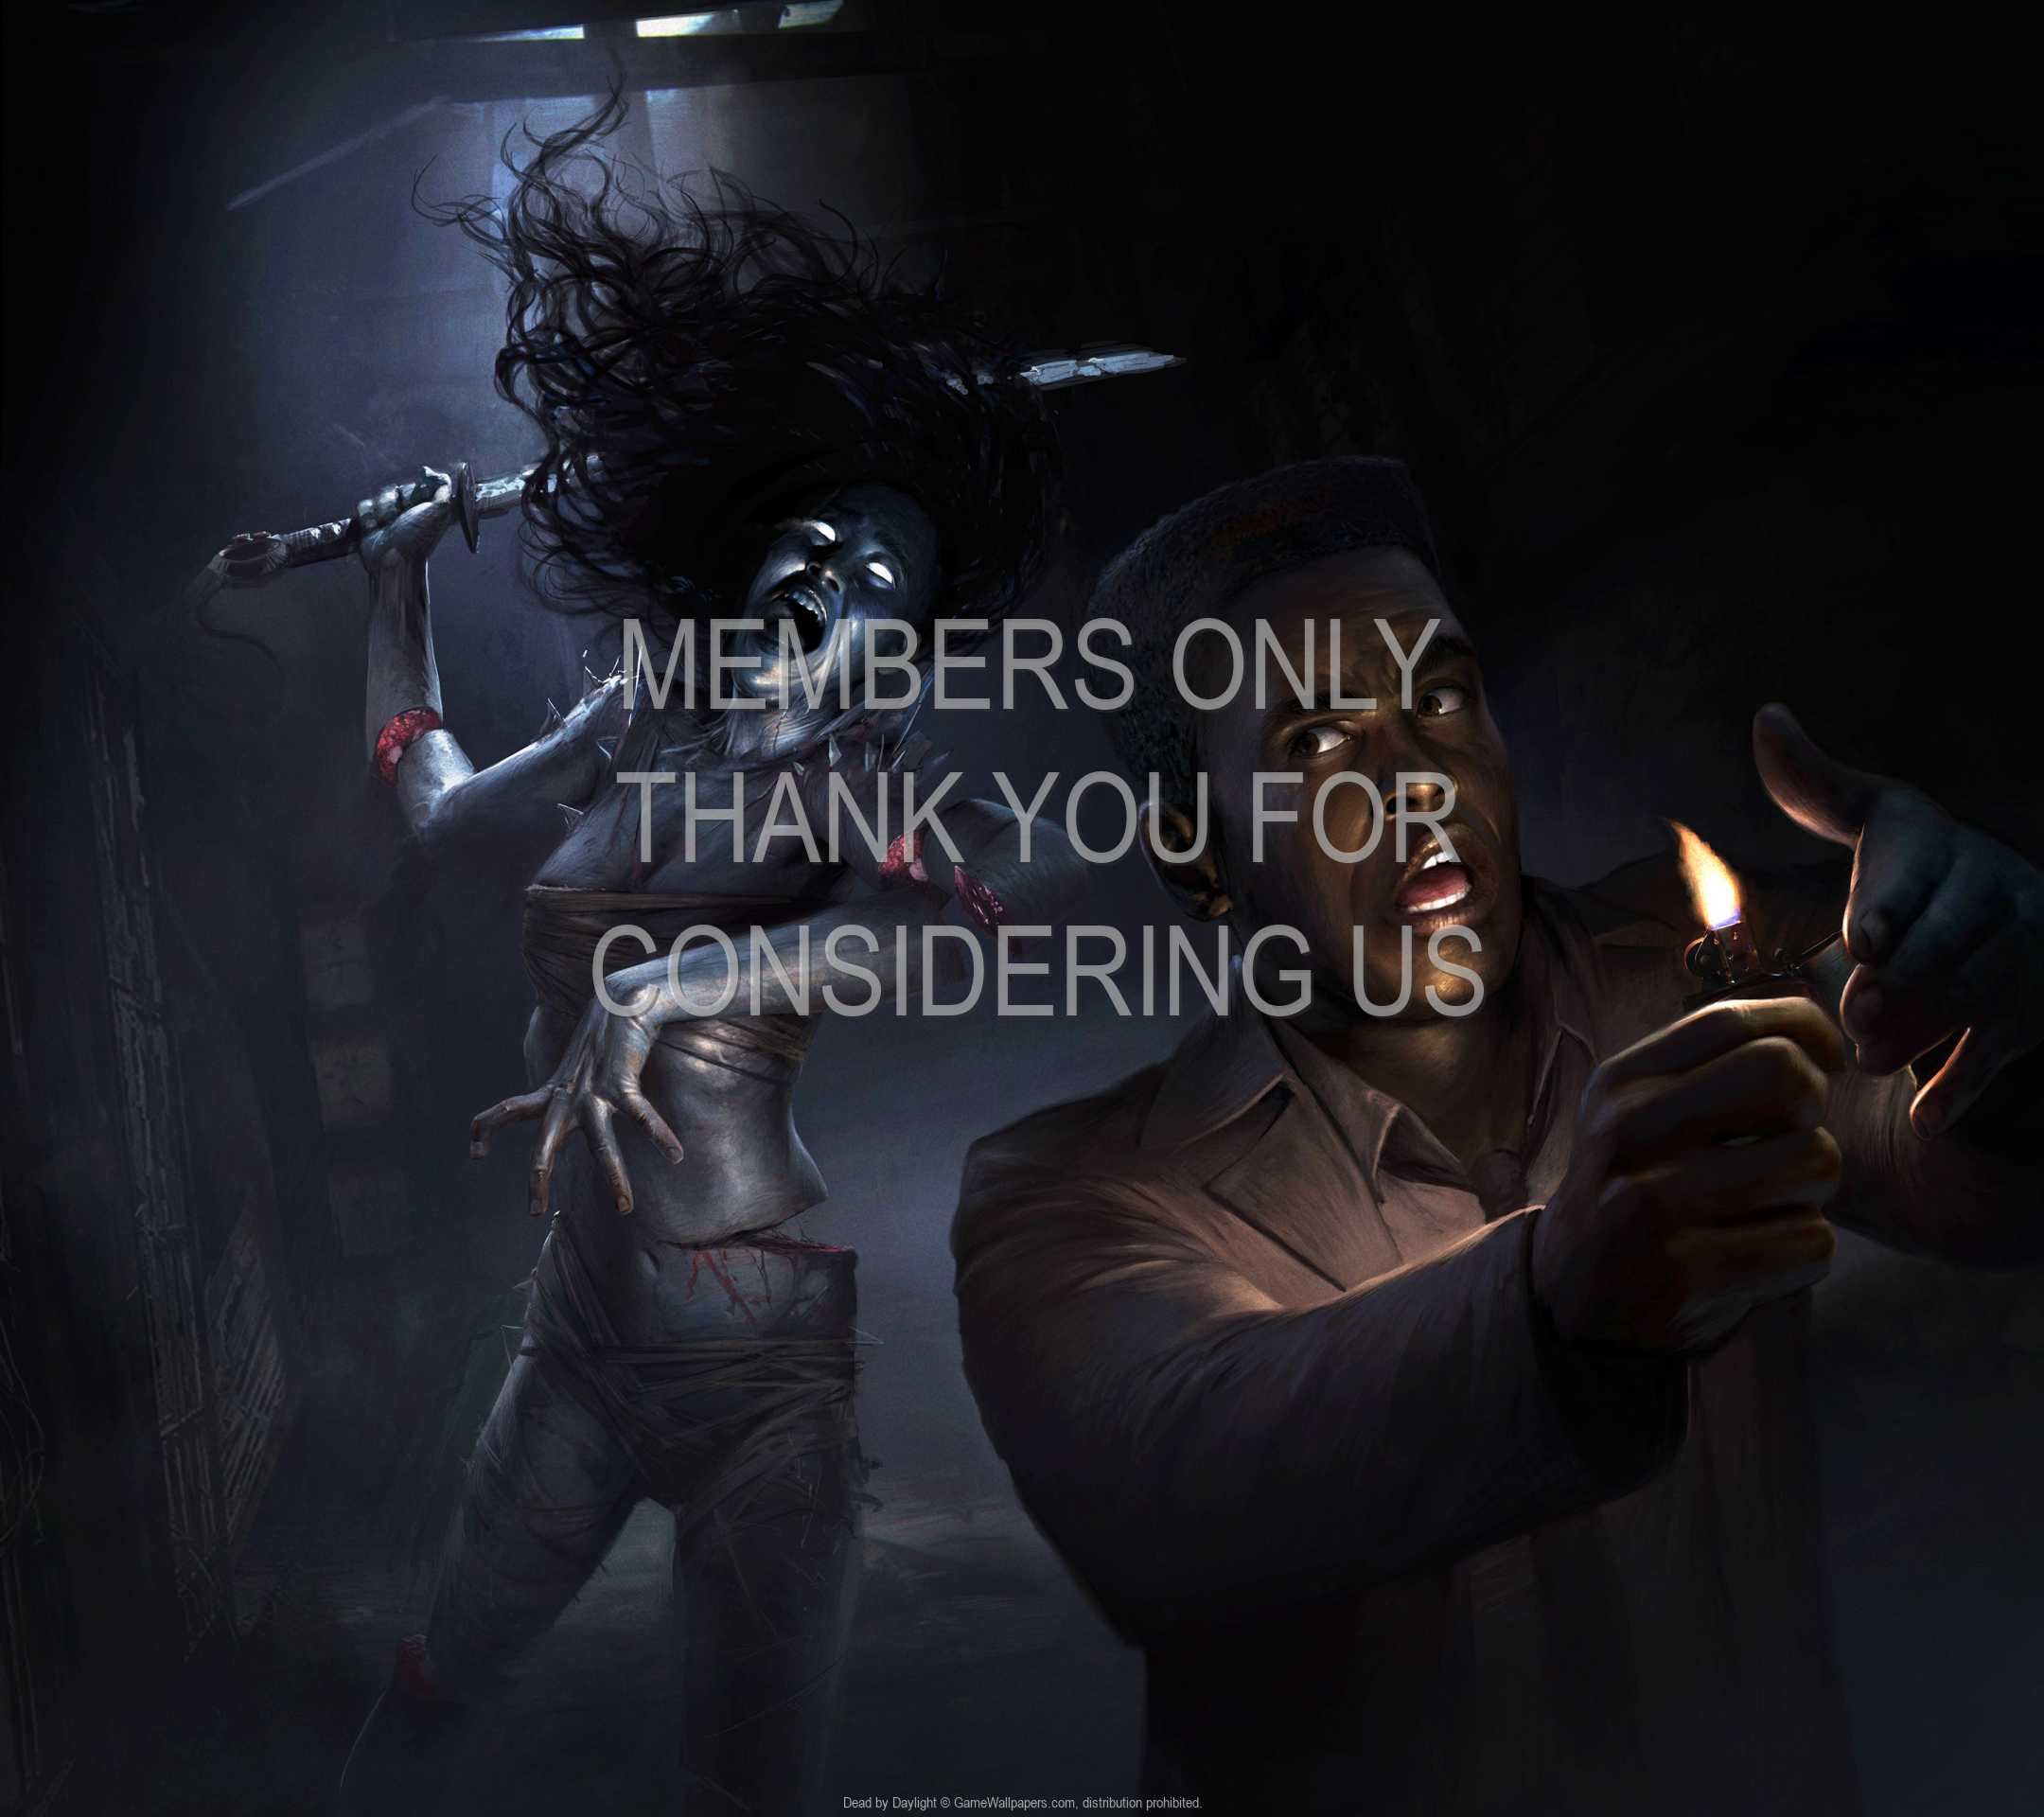 Dead by Daylight 1080p Horizontal Mobile wallpaper or background 02